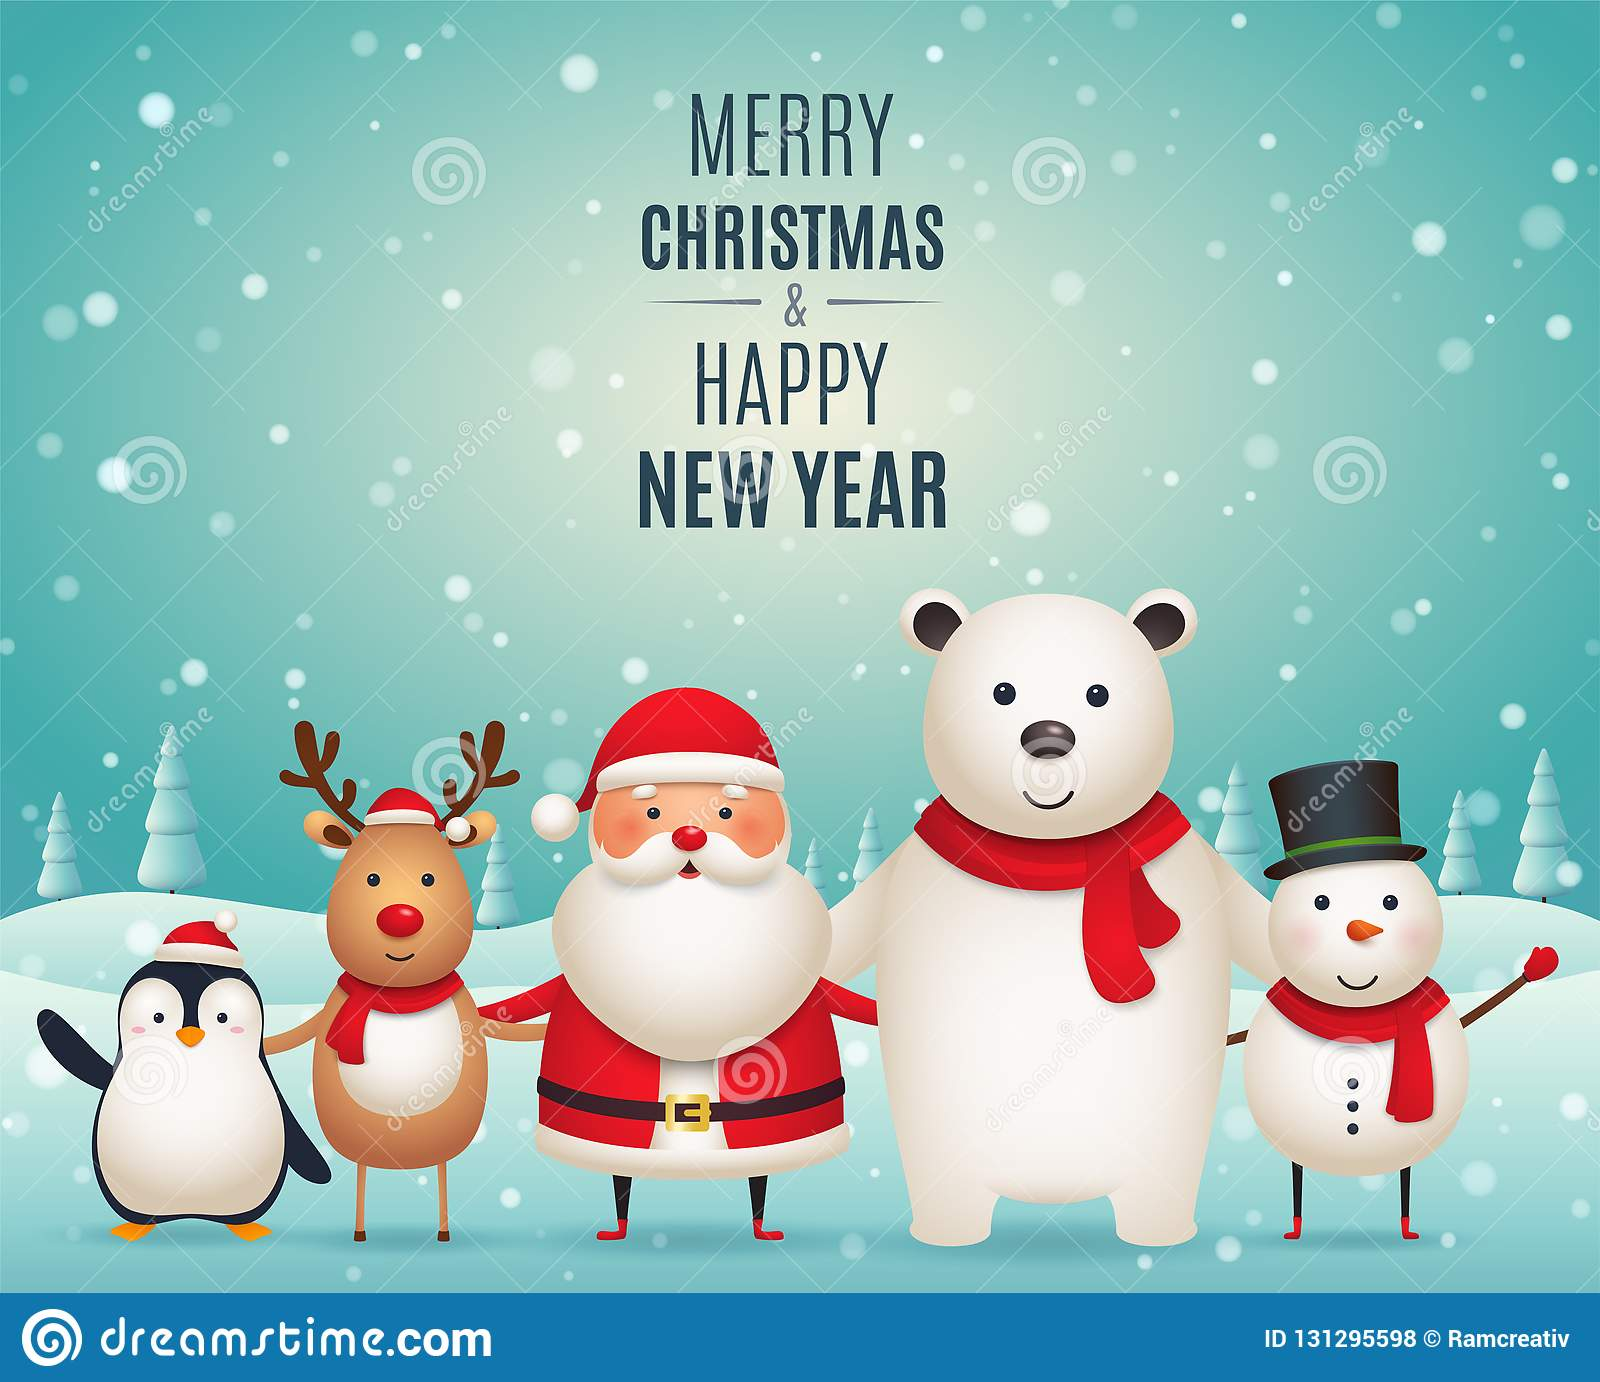 merry christmas new year companions cute christmas animals penguin deer santa claus white